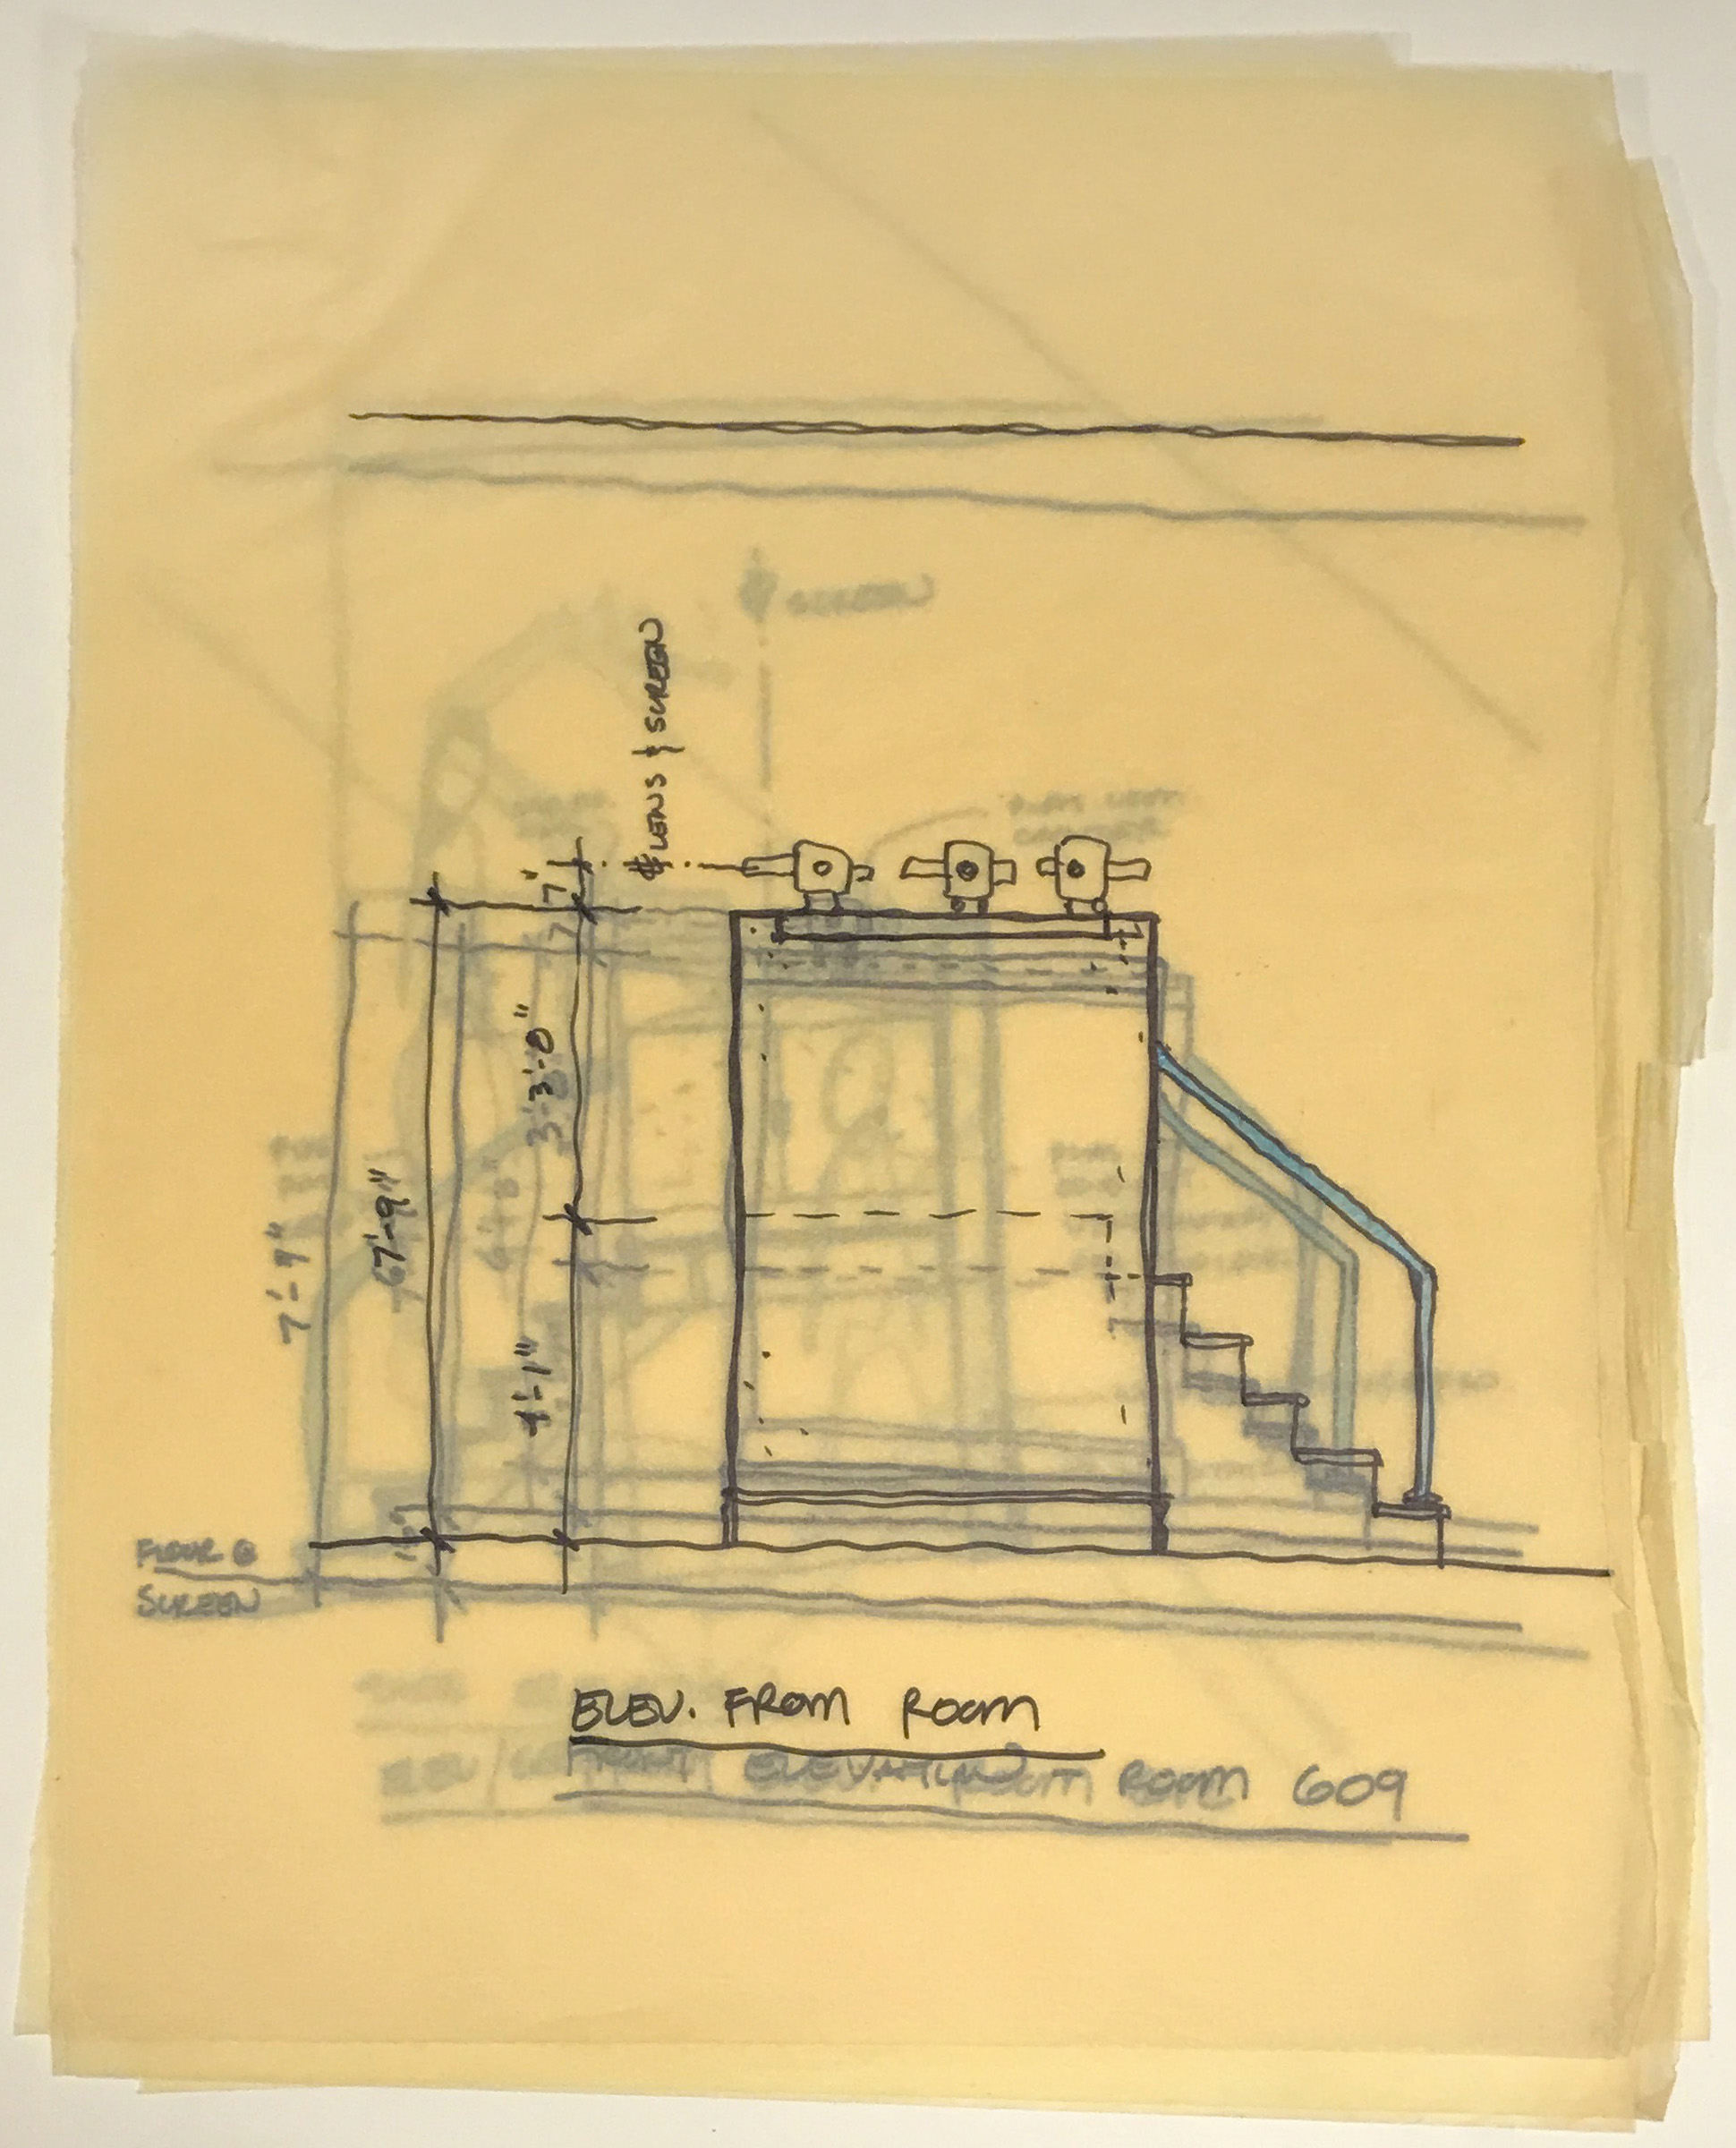 A stack of sketches of room elevations and details, drawn on transparent paper.